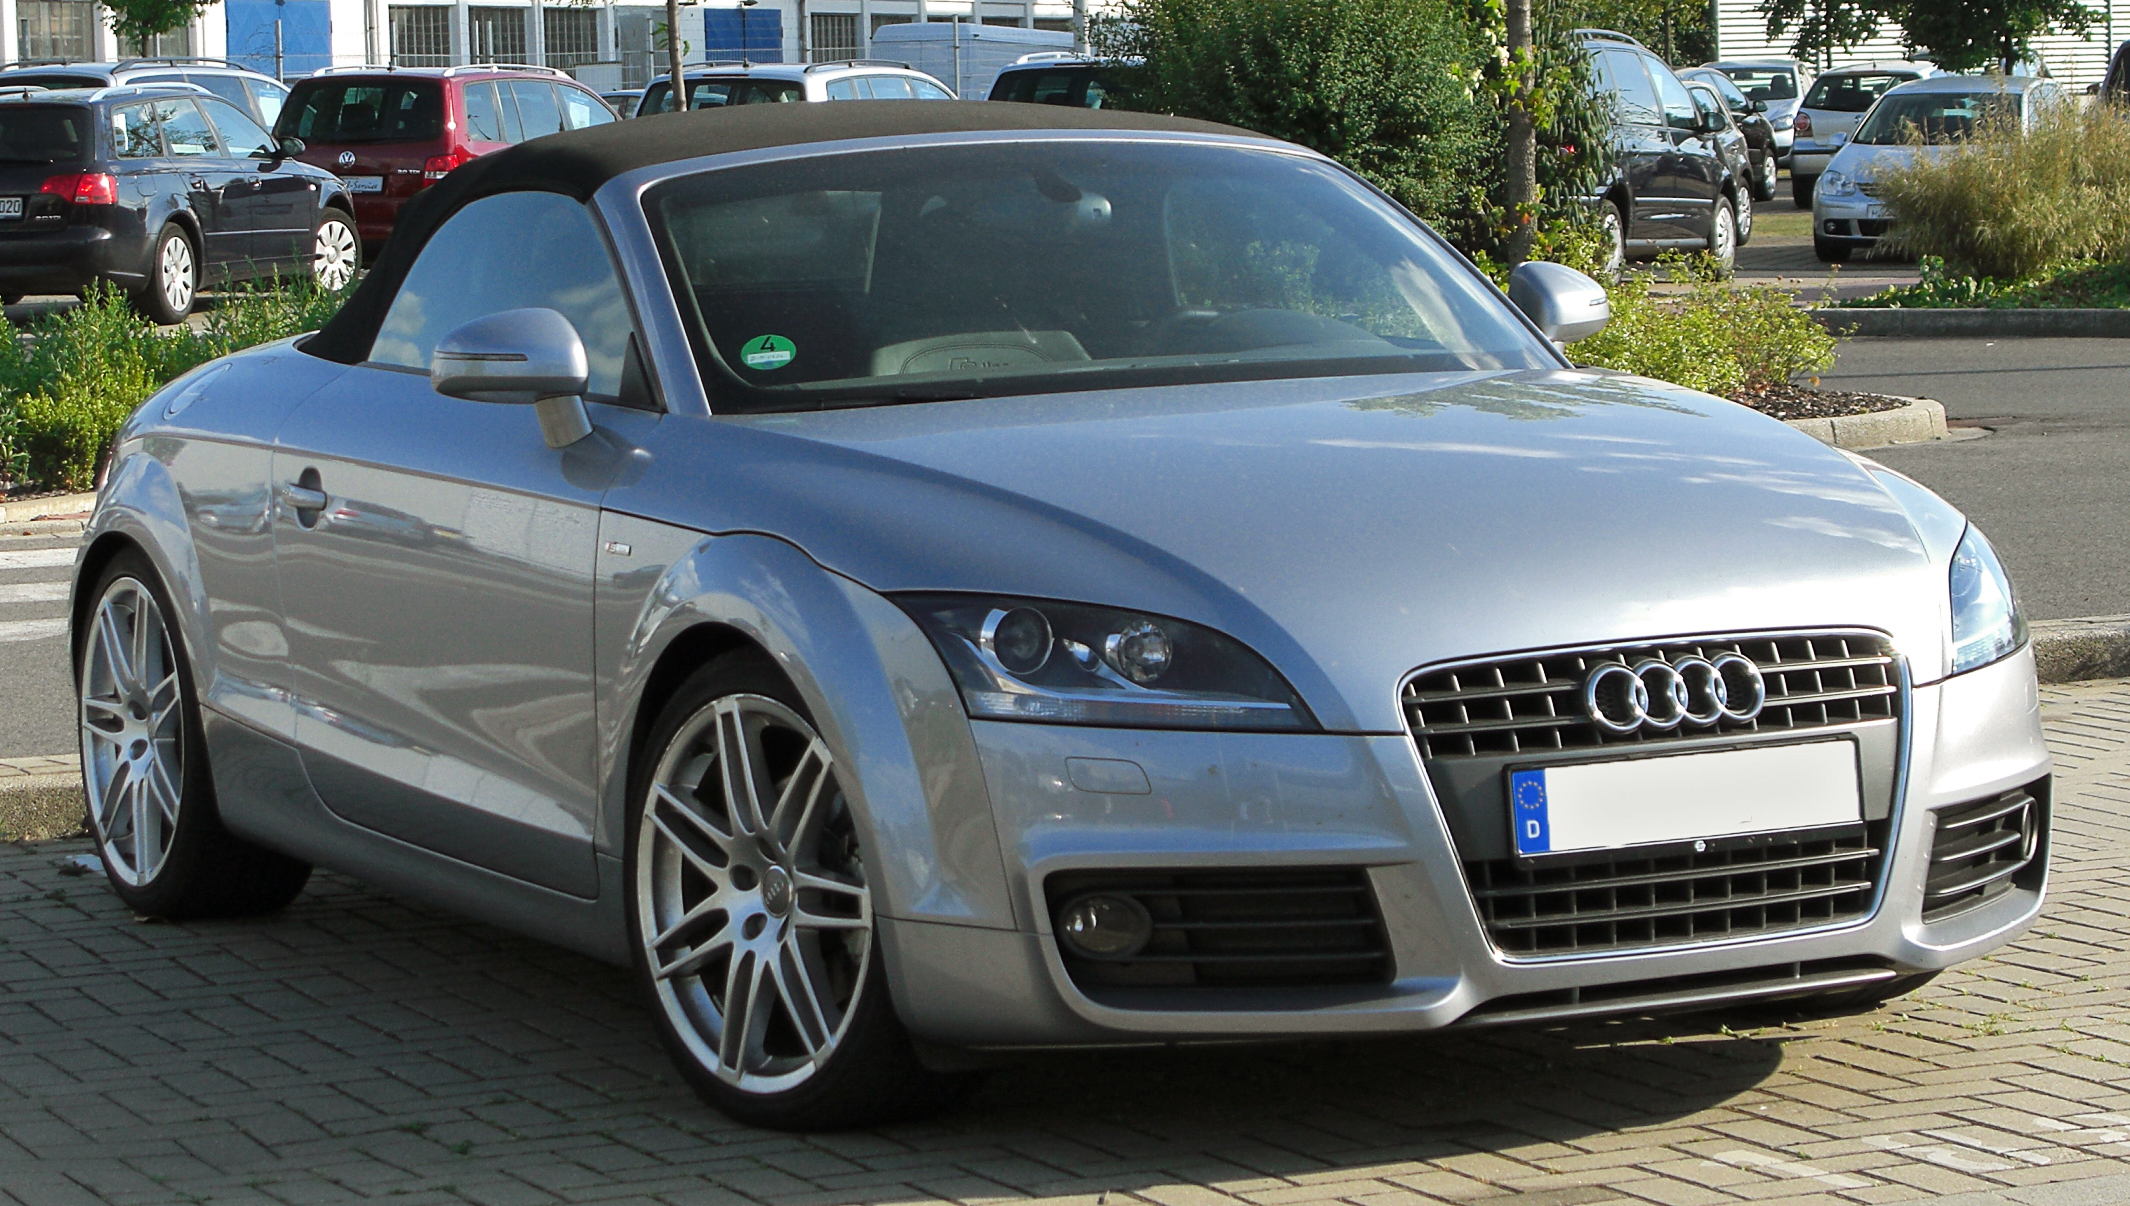 craig 39 s selection 2008 audi tt used car test drive get the quattro and get used to a lurchy dsg. Black Bedroom Furniture Sets. Home Design Ideas